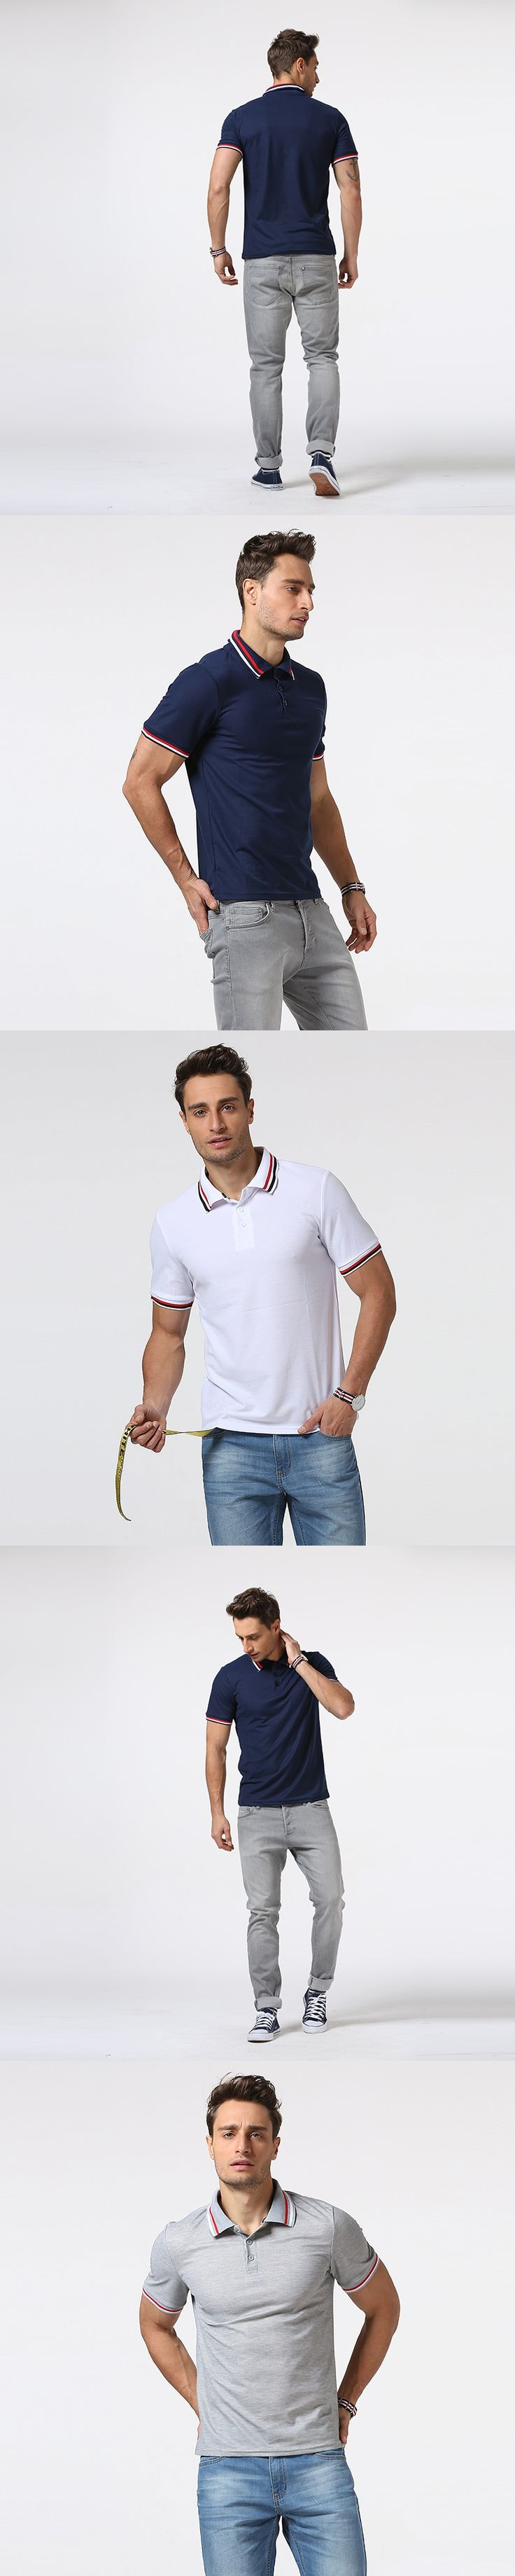 2017 Brand New Men Polo Shirt Short Sleeve Men England Polo Shirt Slim fit Clothing Top Quality camisa polo masculina